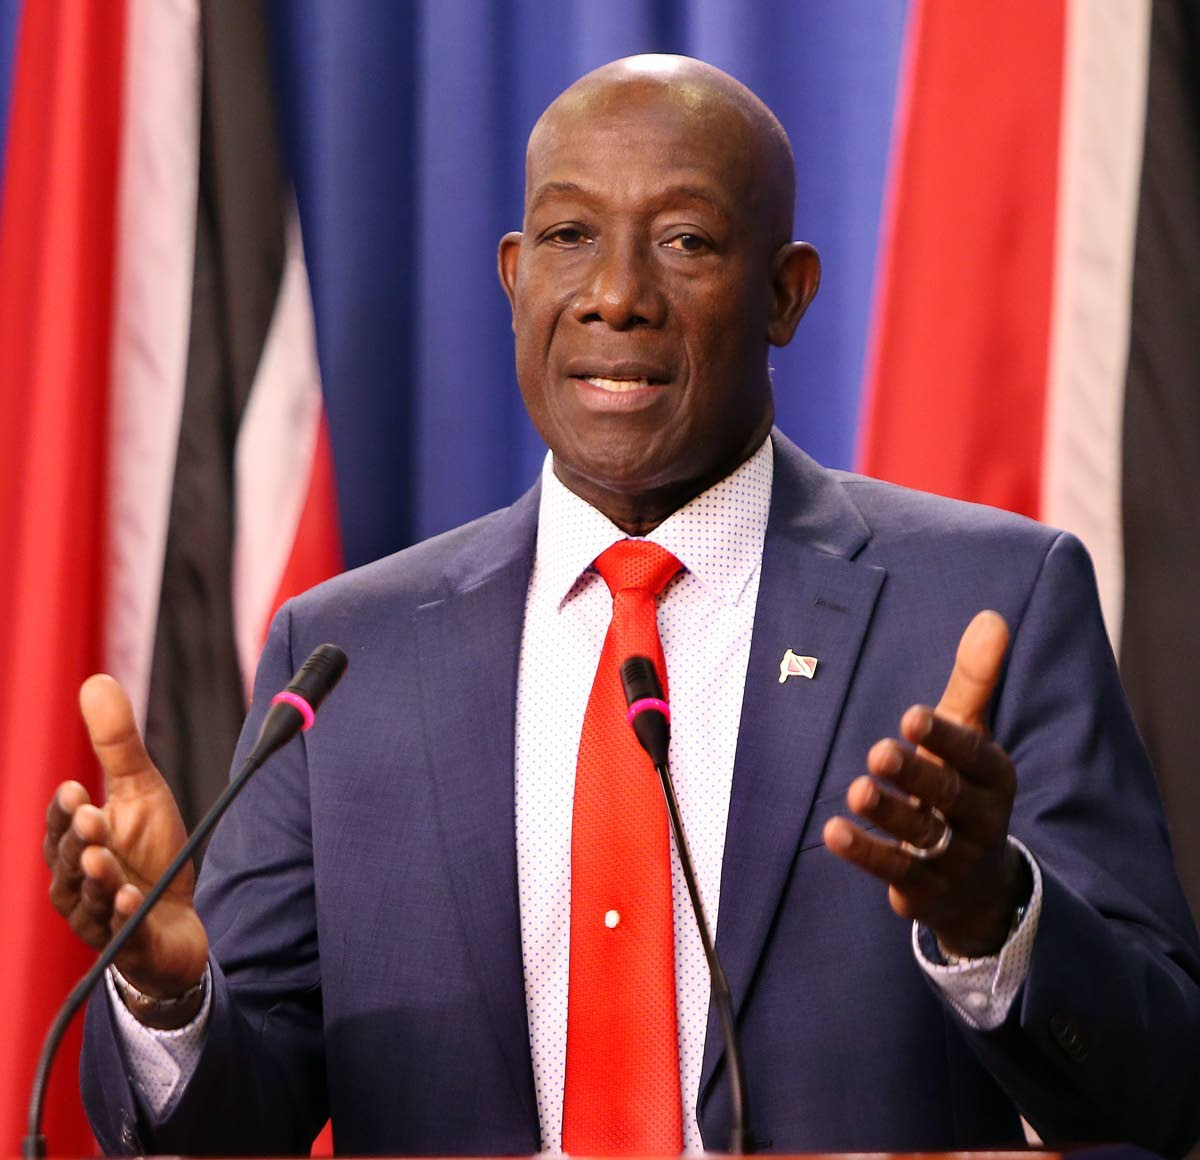 2021 must be the Year of CARICOM: Incoming Chairman, Prime Minister Dr Keith Rowley – Dominica News Online